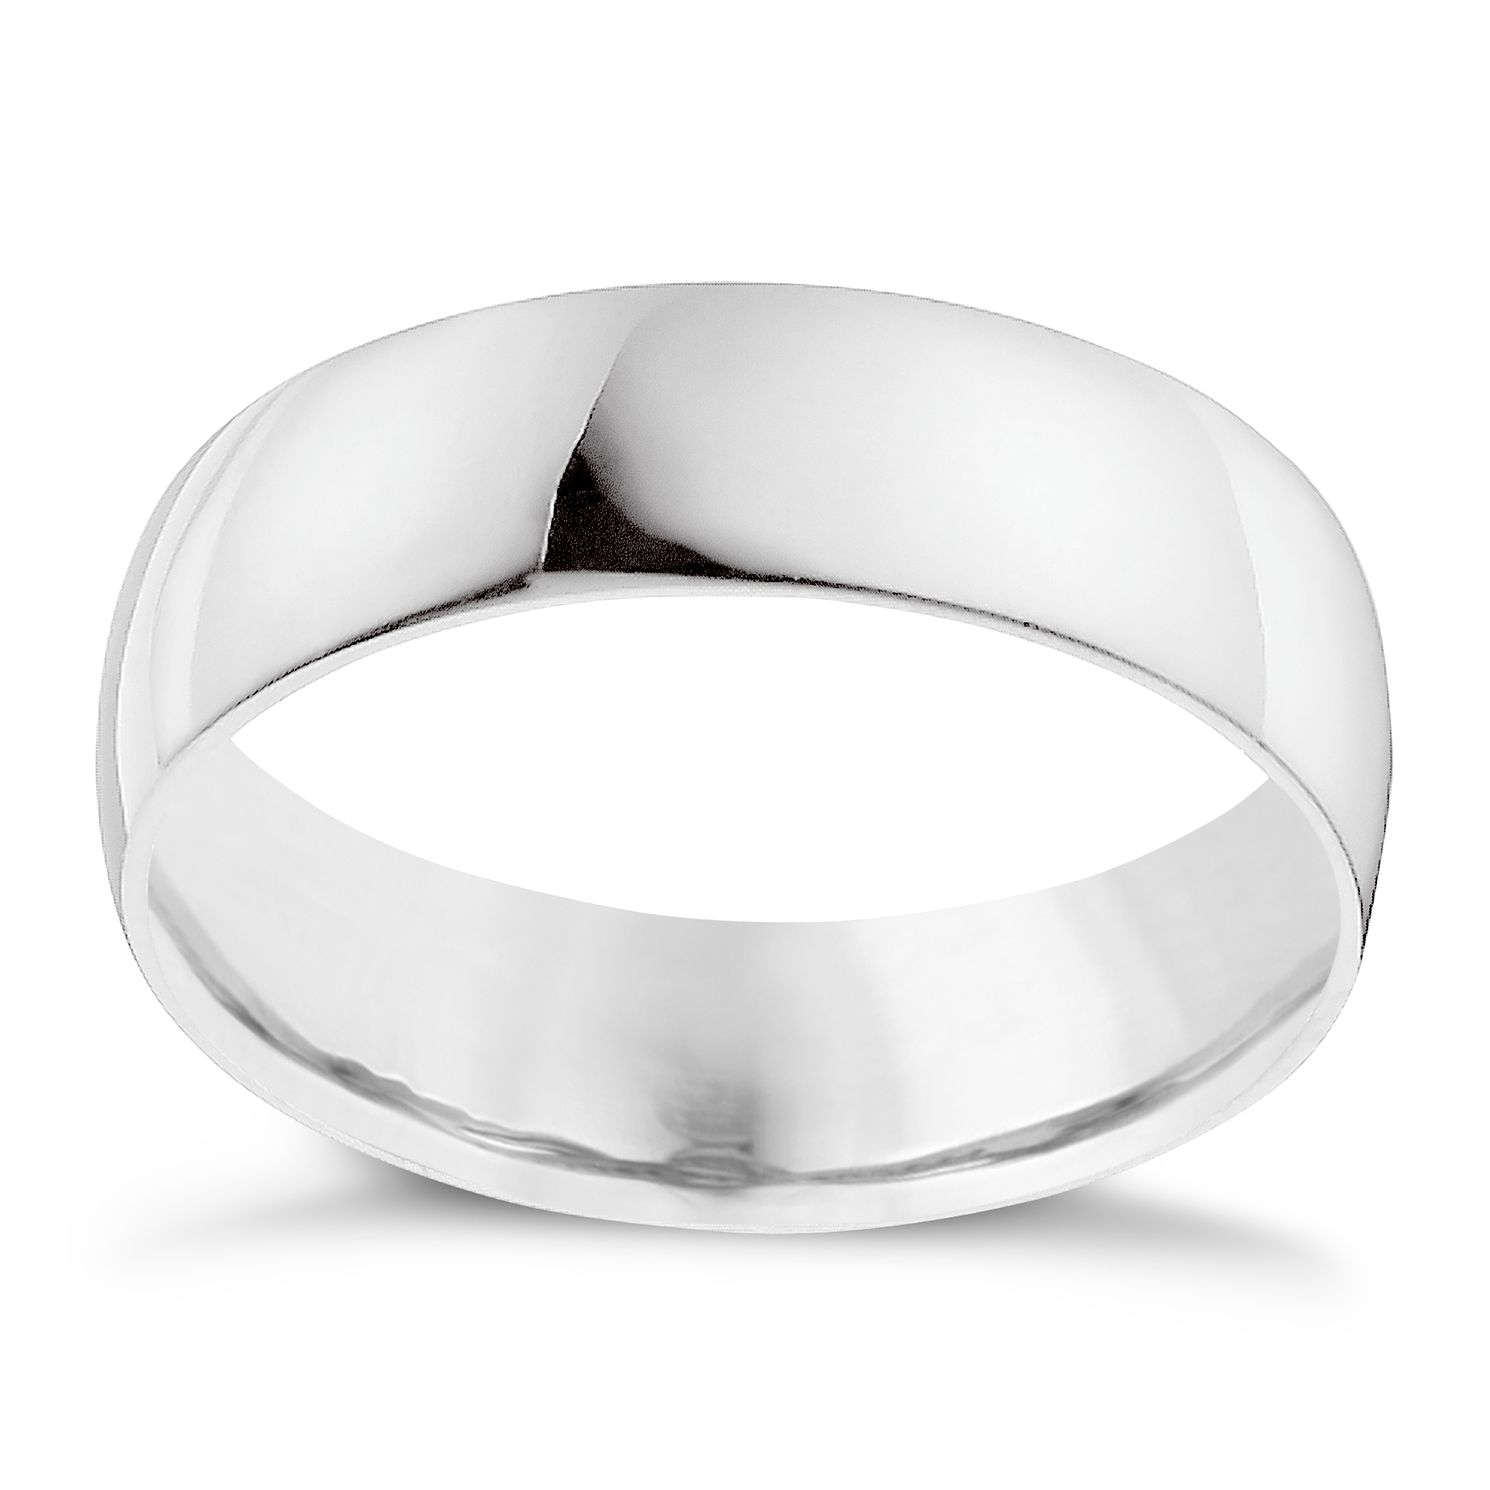 Palladium 950 7mm Extra Heavyweight D Shape Ring - Product number 9316108